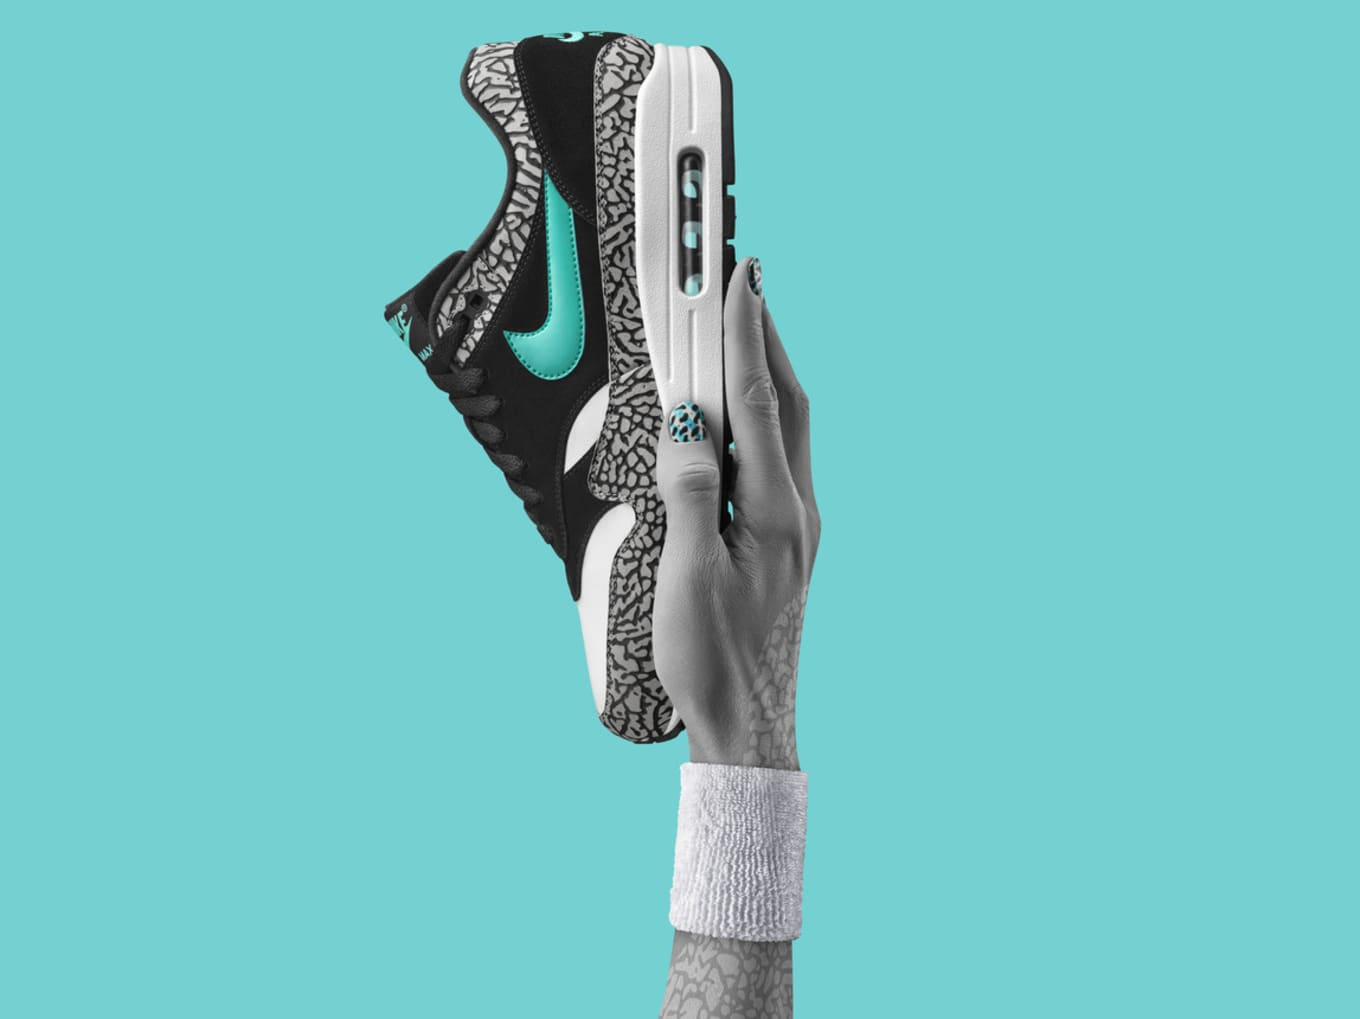 Nike Air Max 1 Atmos 2017 Pack Comparison | Sole Collector